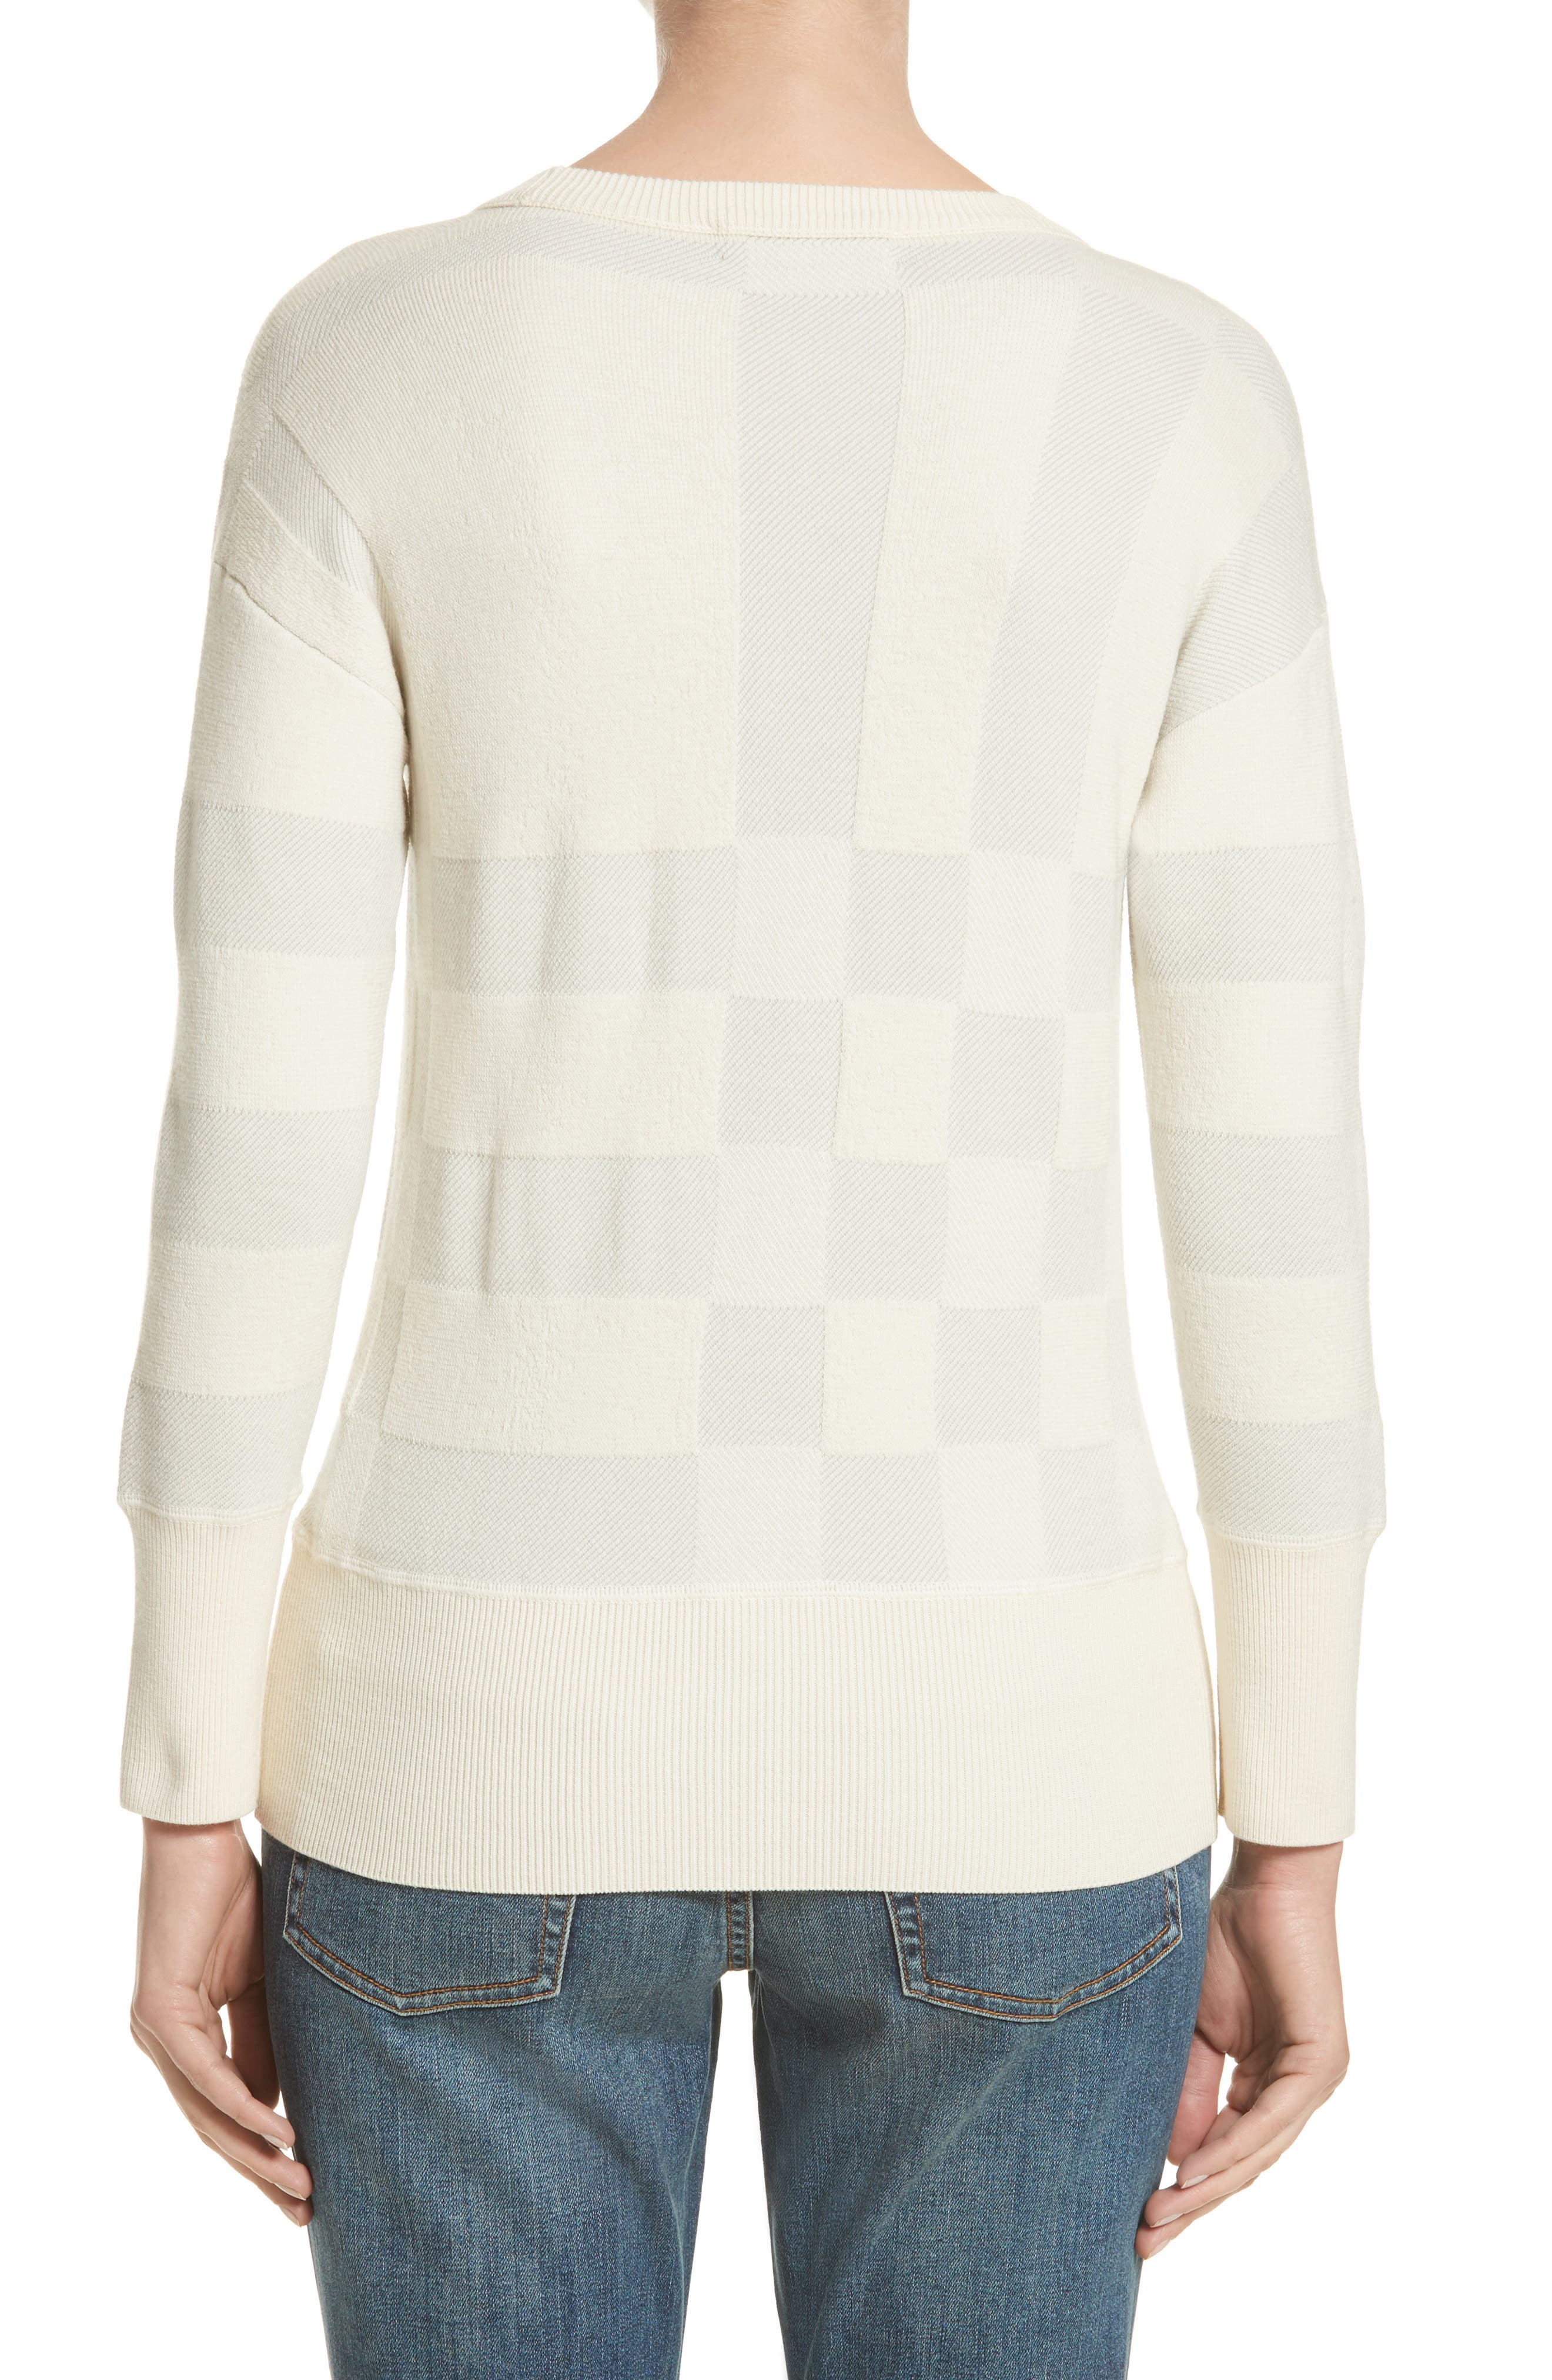 Alternate Image 2  - Burberry Check Knit Wool Blend Sweater (Nordstrom Exclusive)